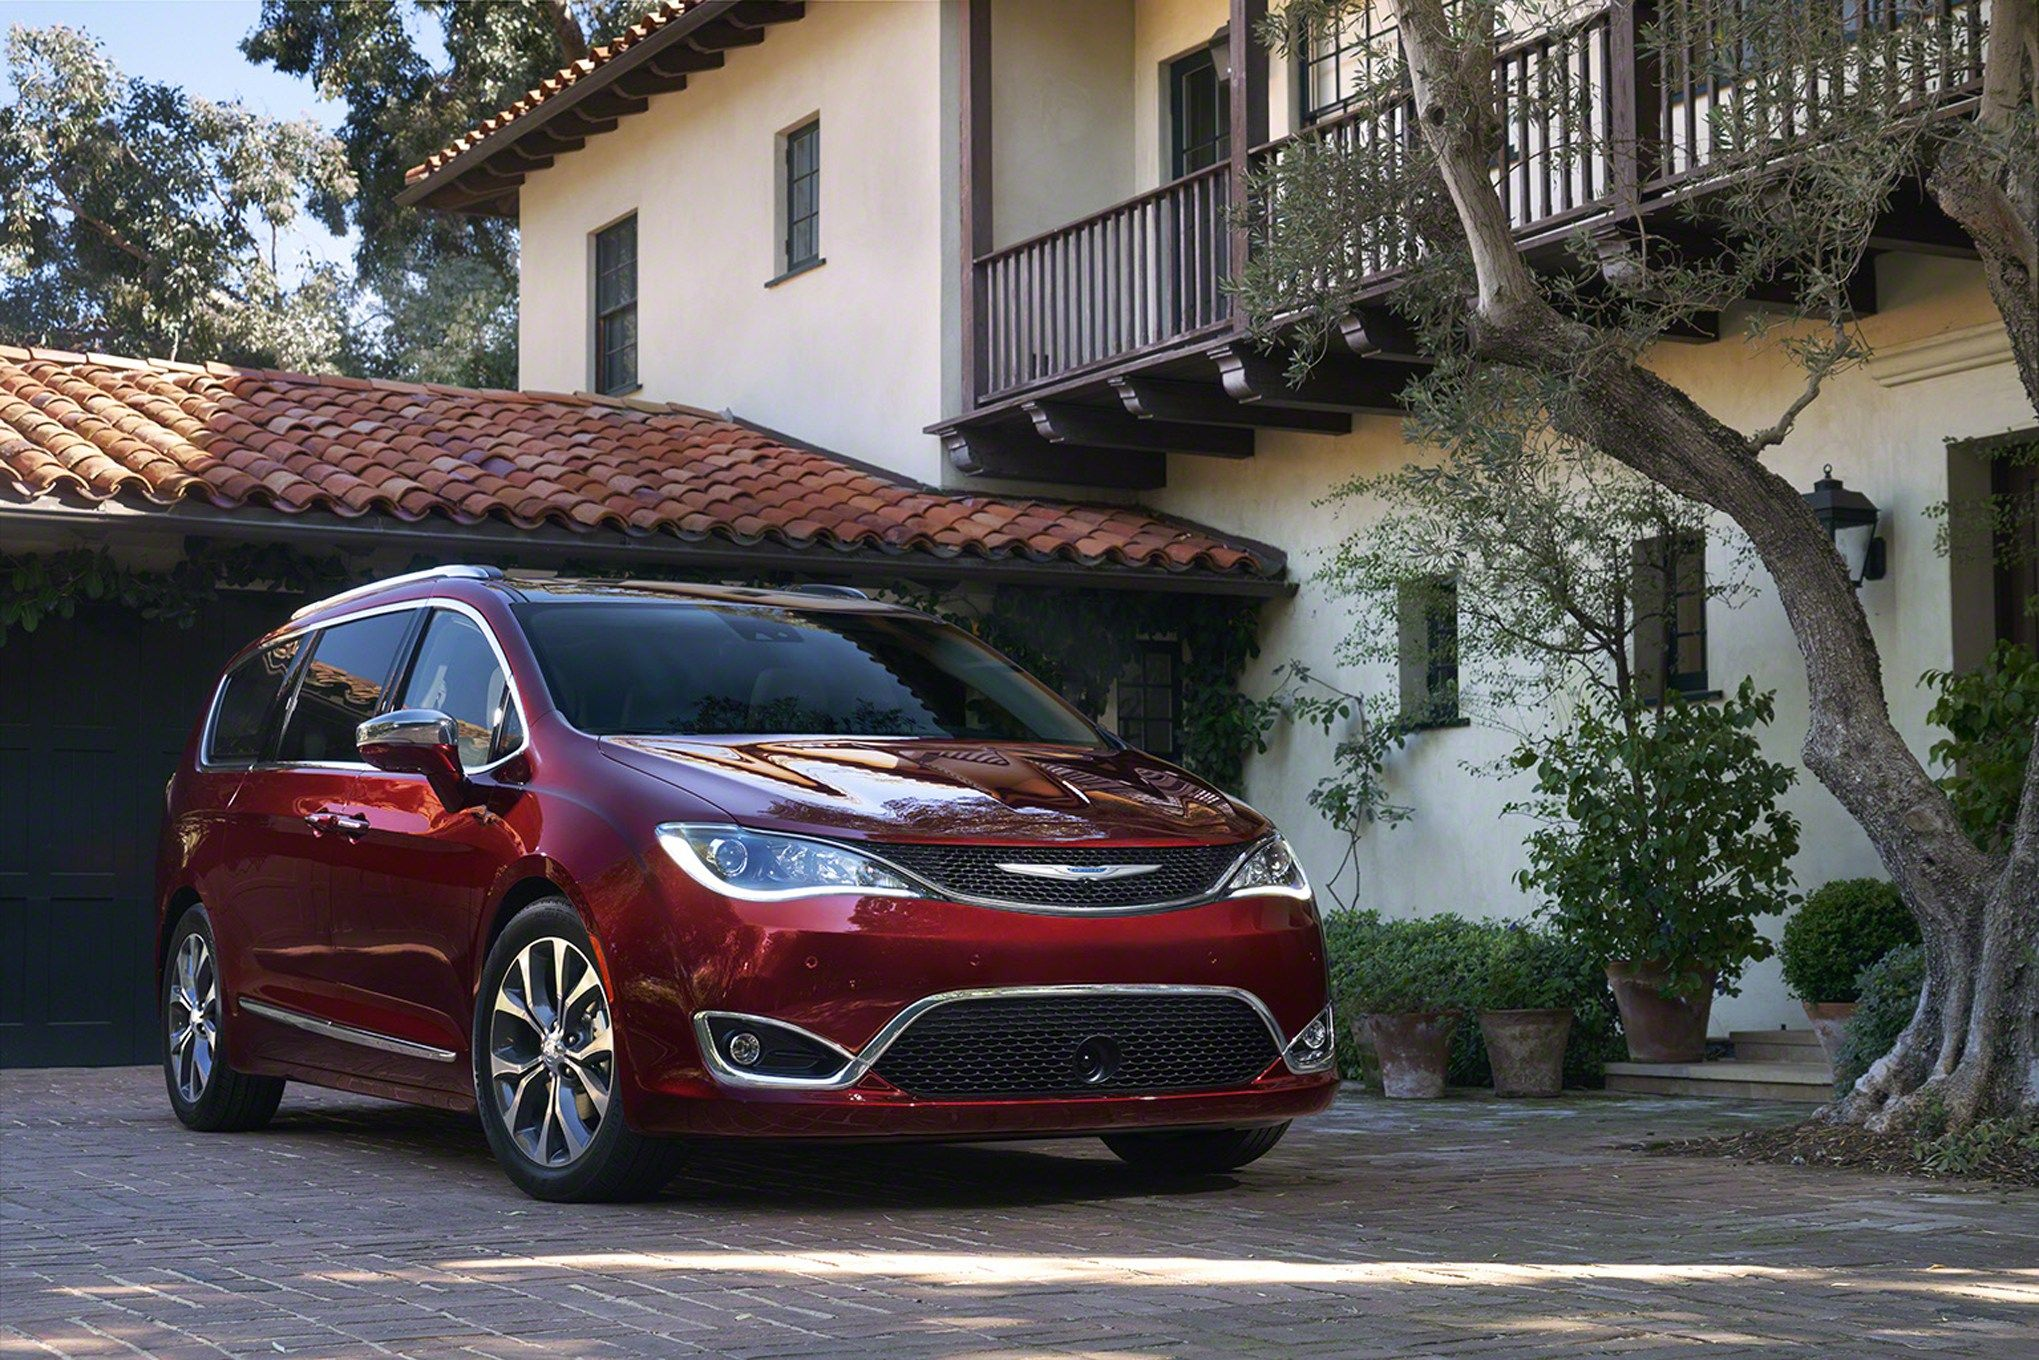 2020 Chrysler Pacifica Review Price And Release Date Rumor New Car